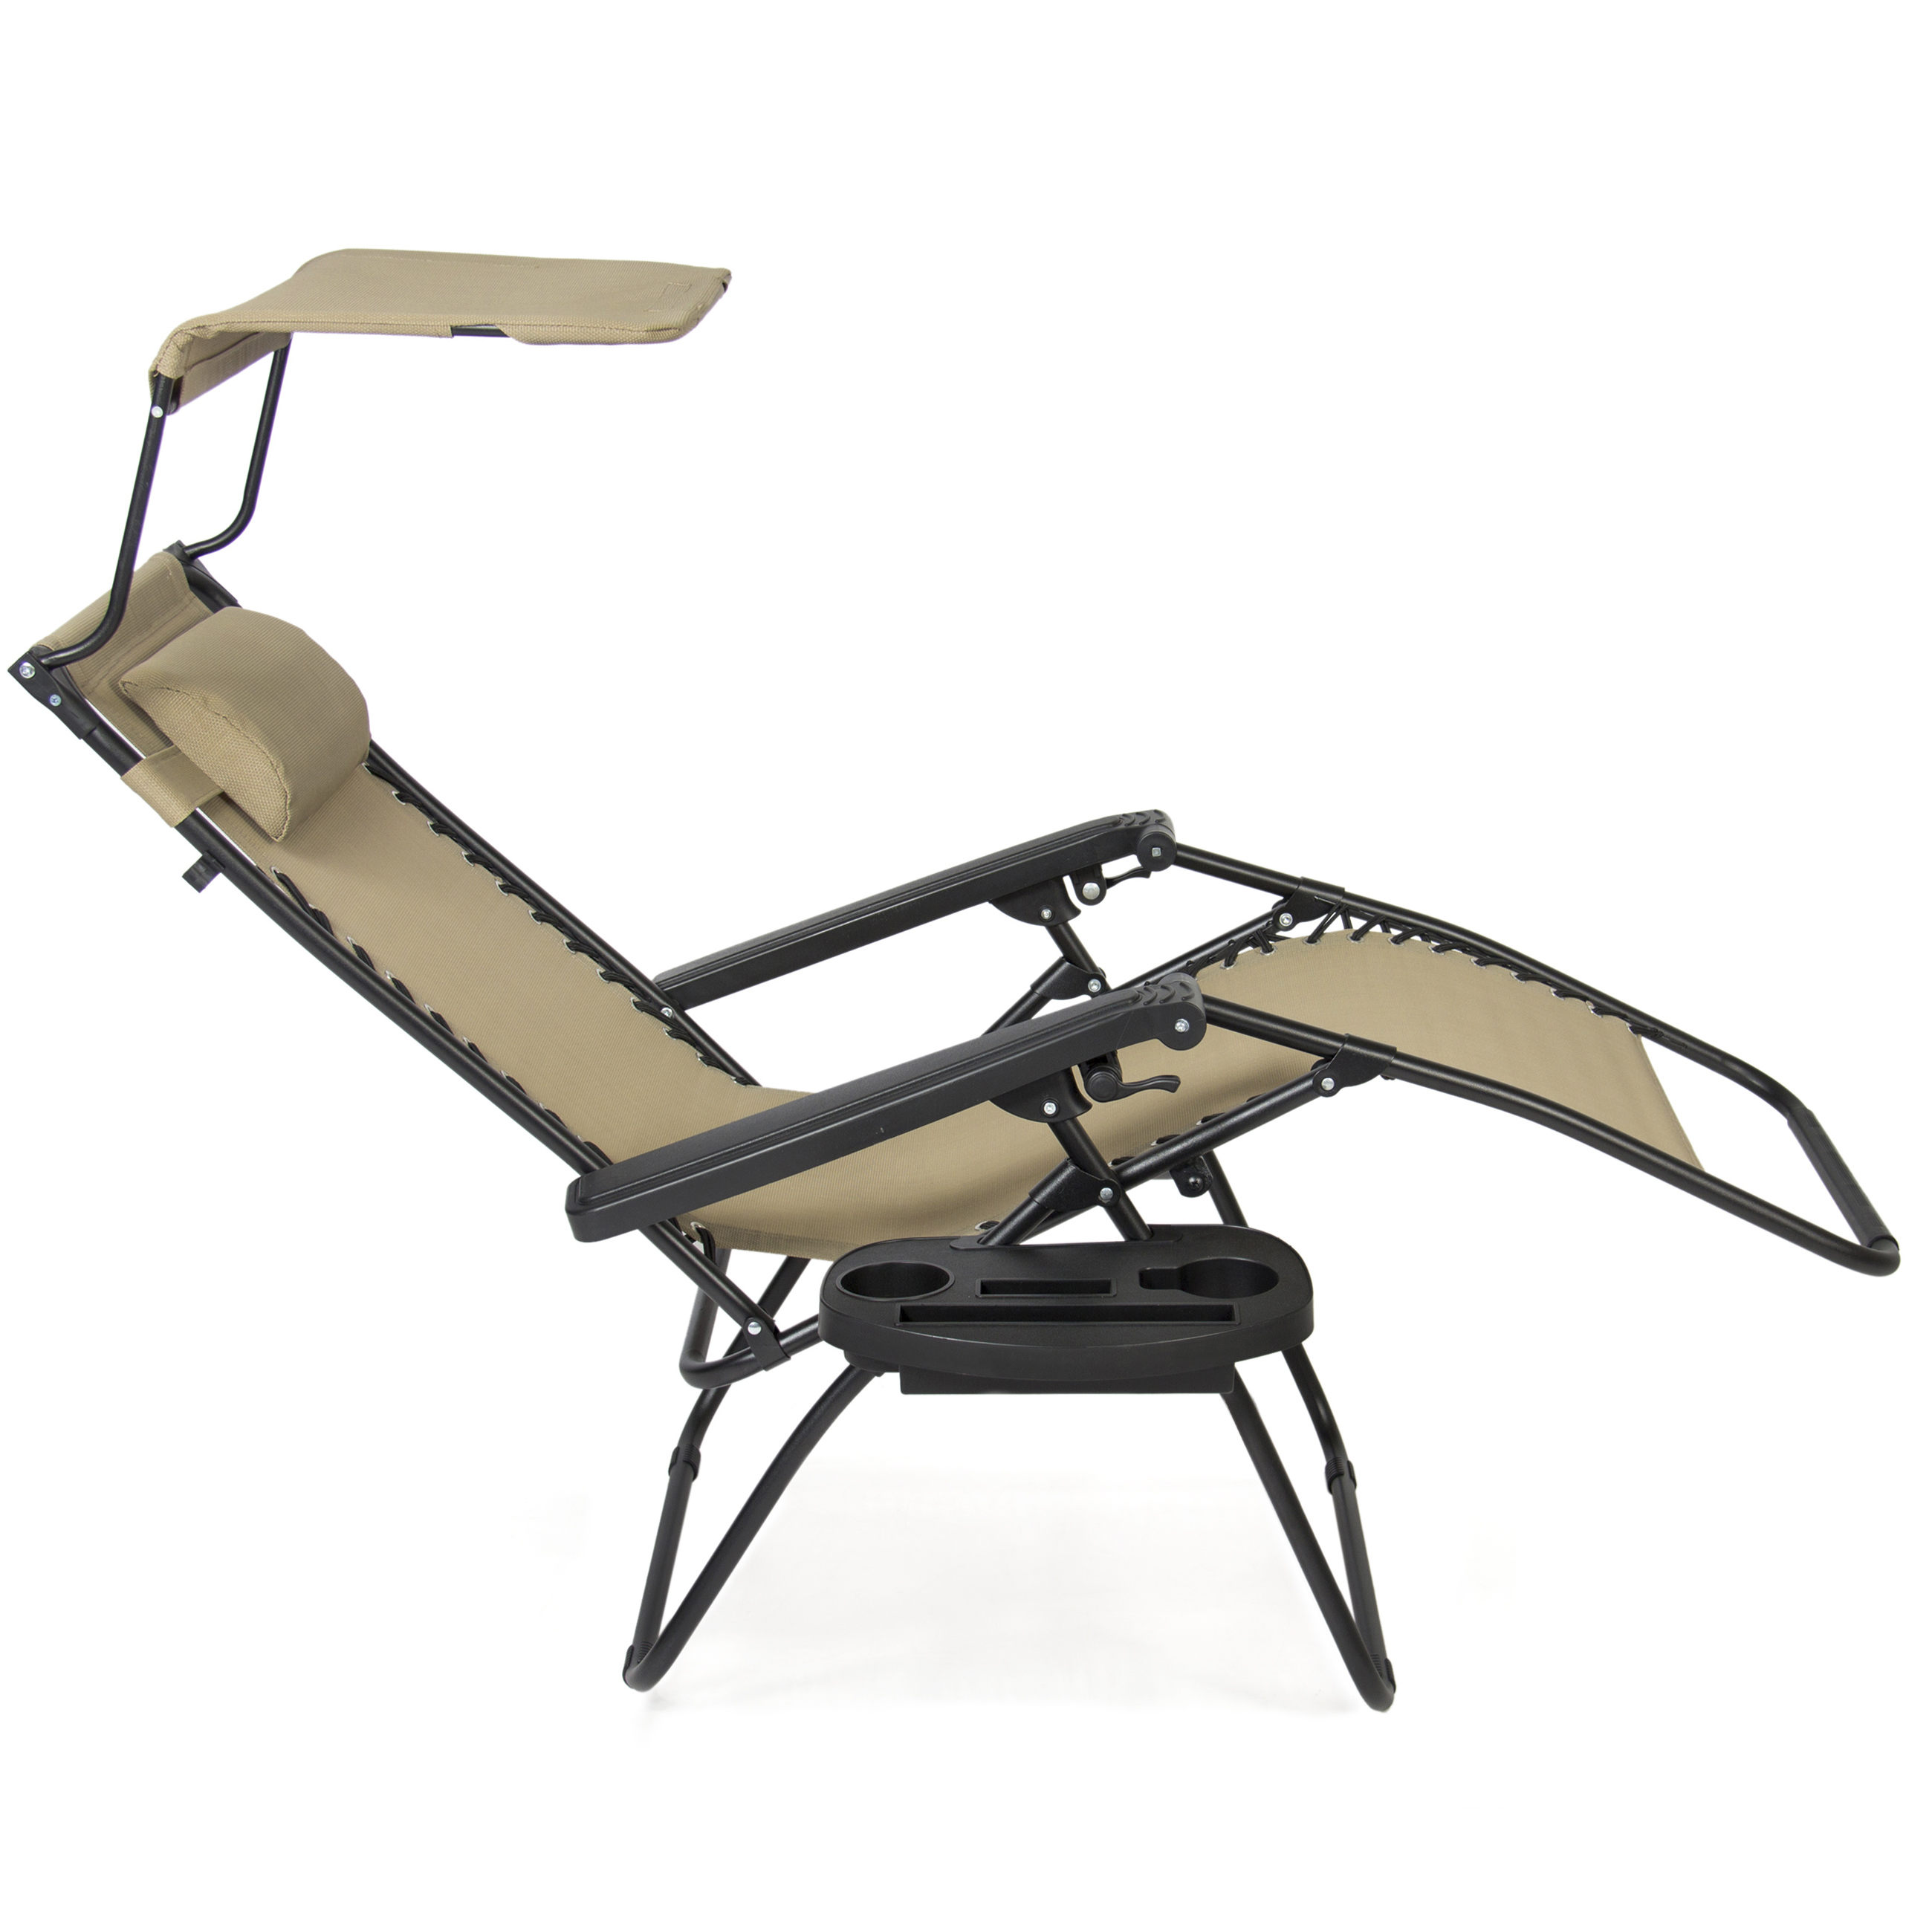 Anti gravity chair coral coast zero gravity chair with for Anti gravity chaise